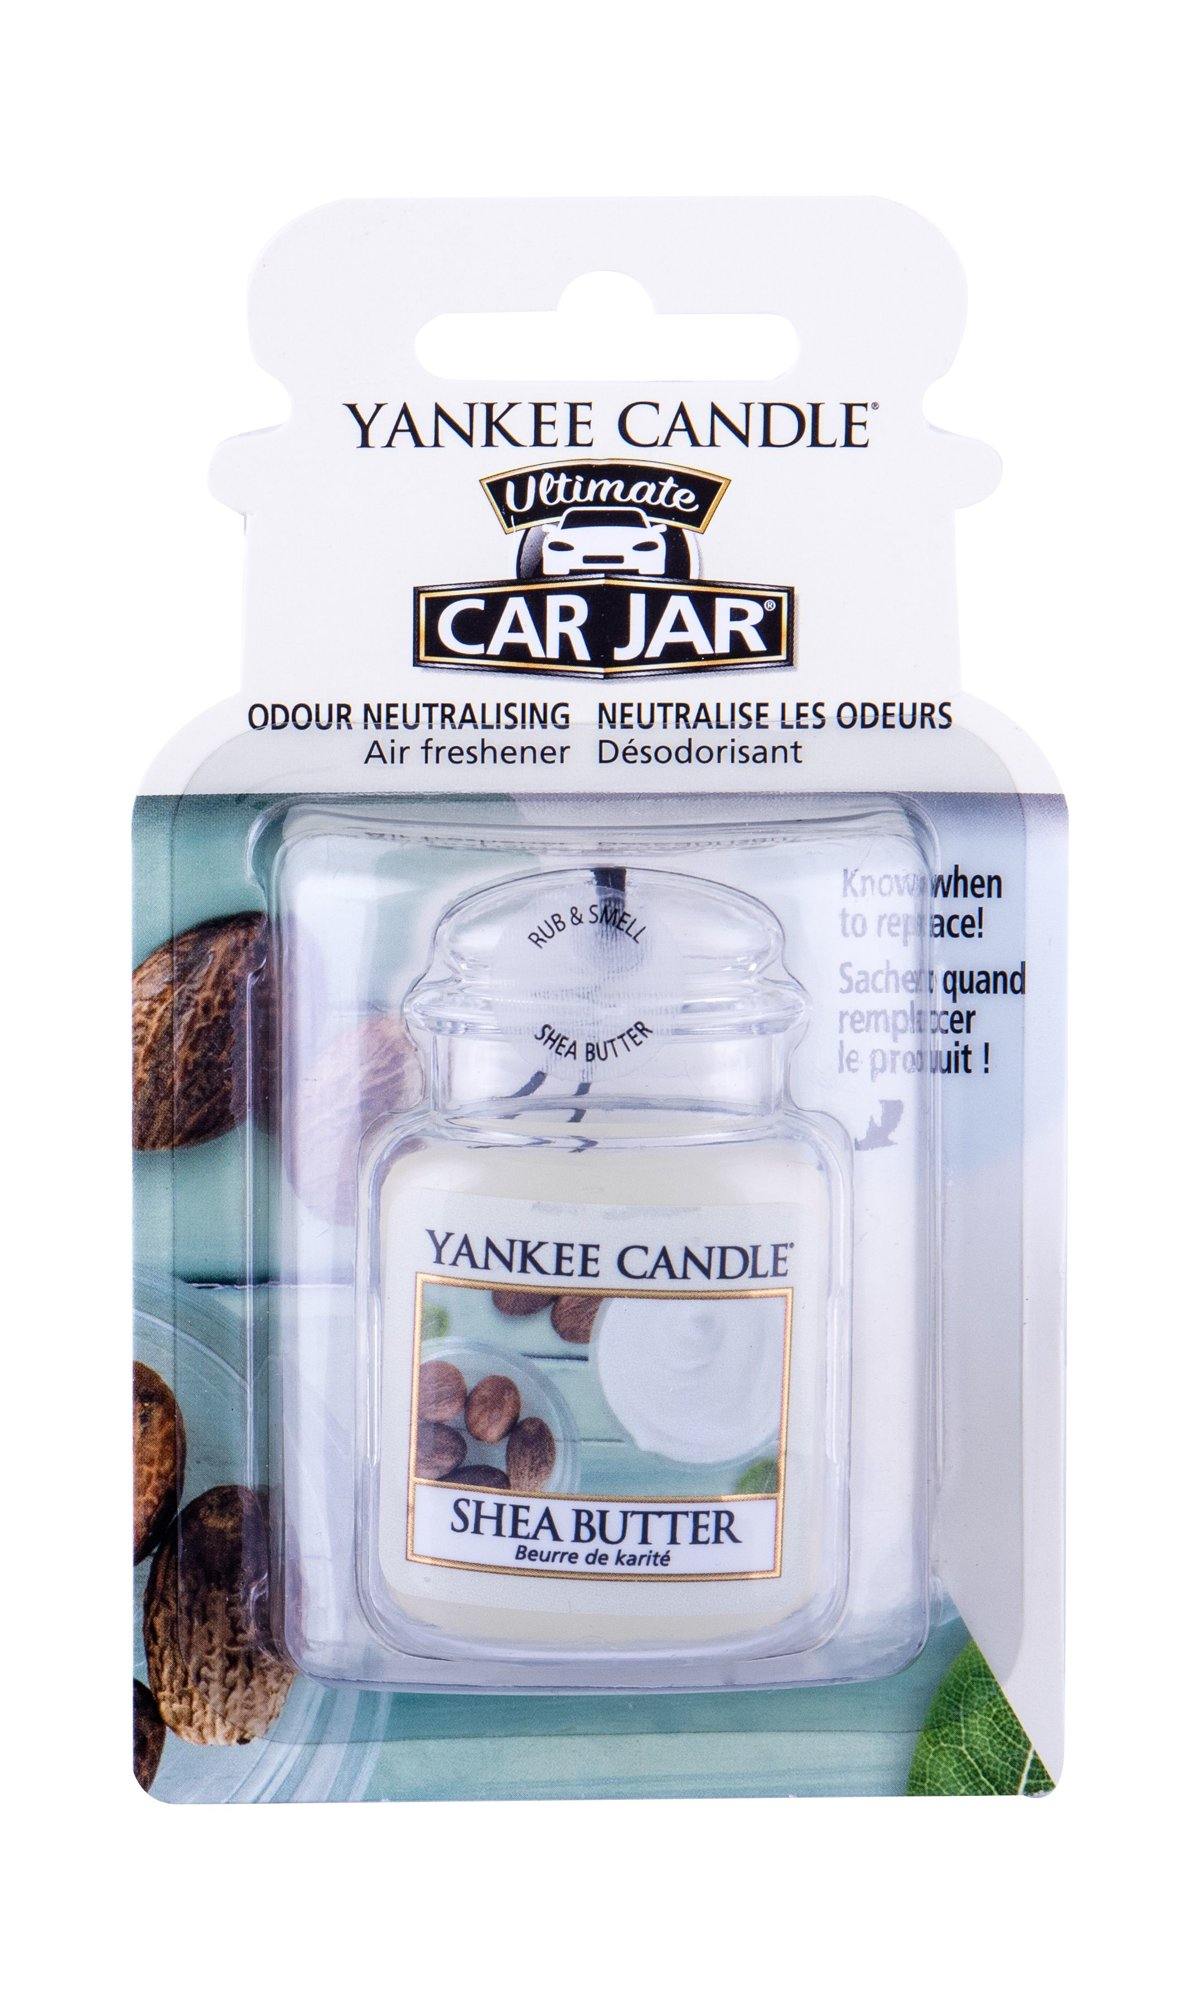 Yankee Candle Shea Butter Car Jar (Vůně do auta, U, 1 ks)